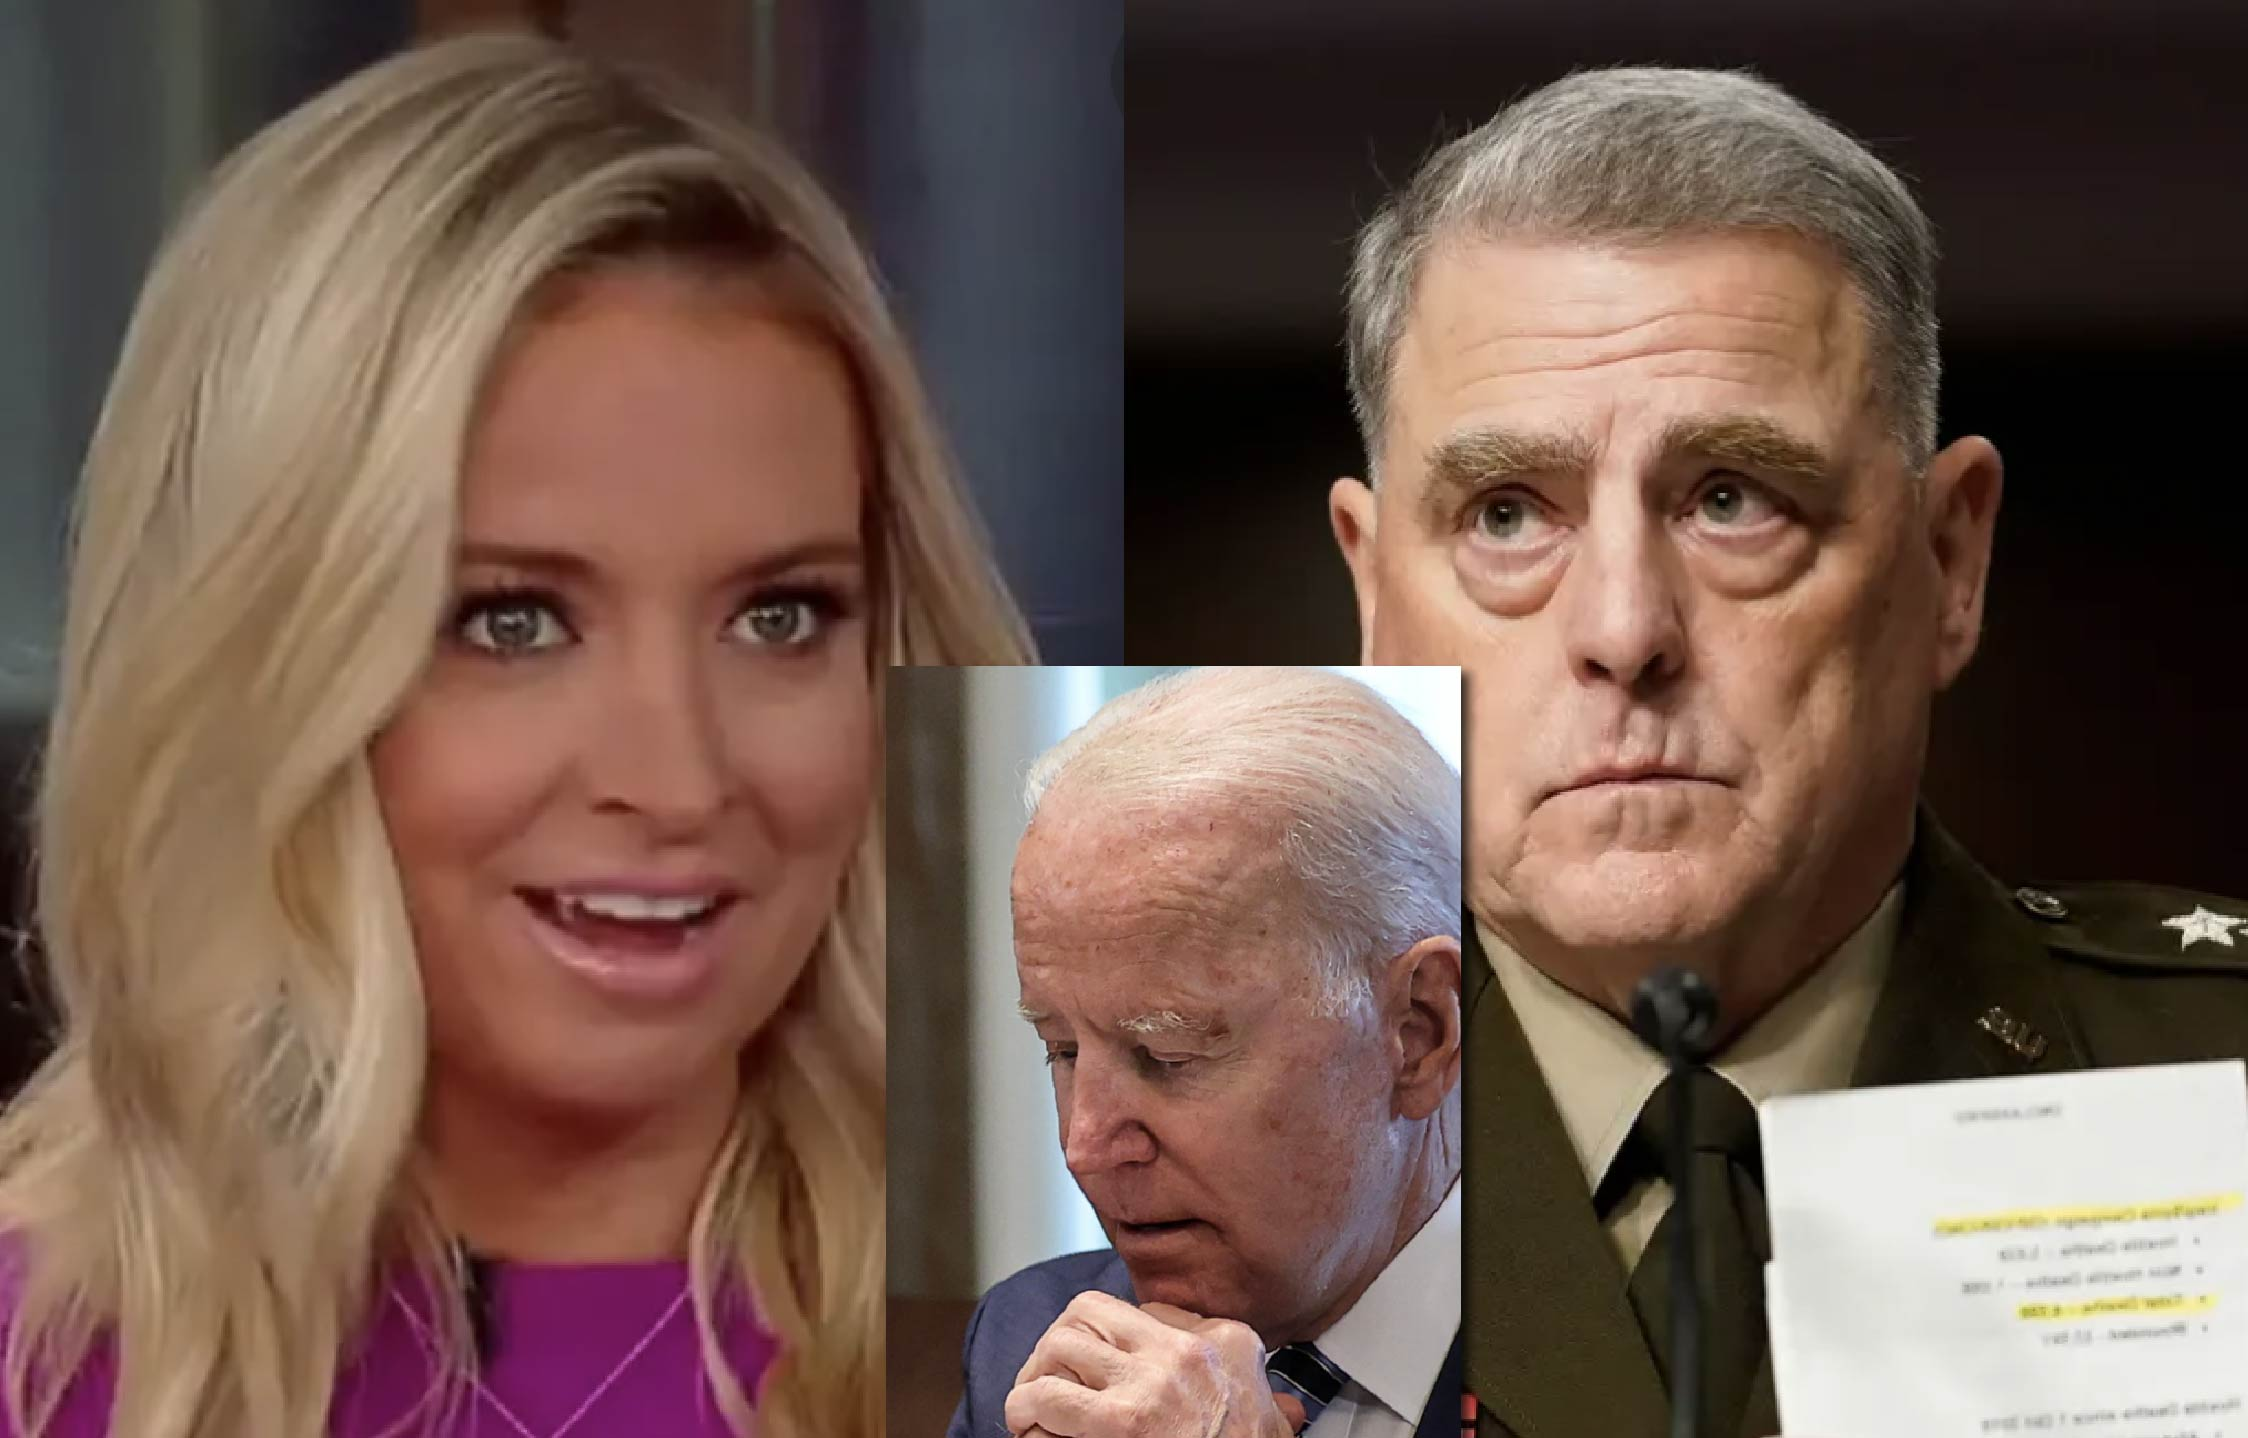 Kayleigh McEnany Absolutely Floored Over How Top Military Brass Just Totally Sunk Joe Biden